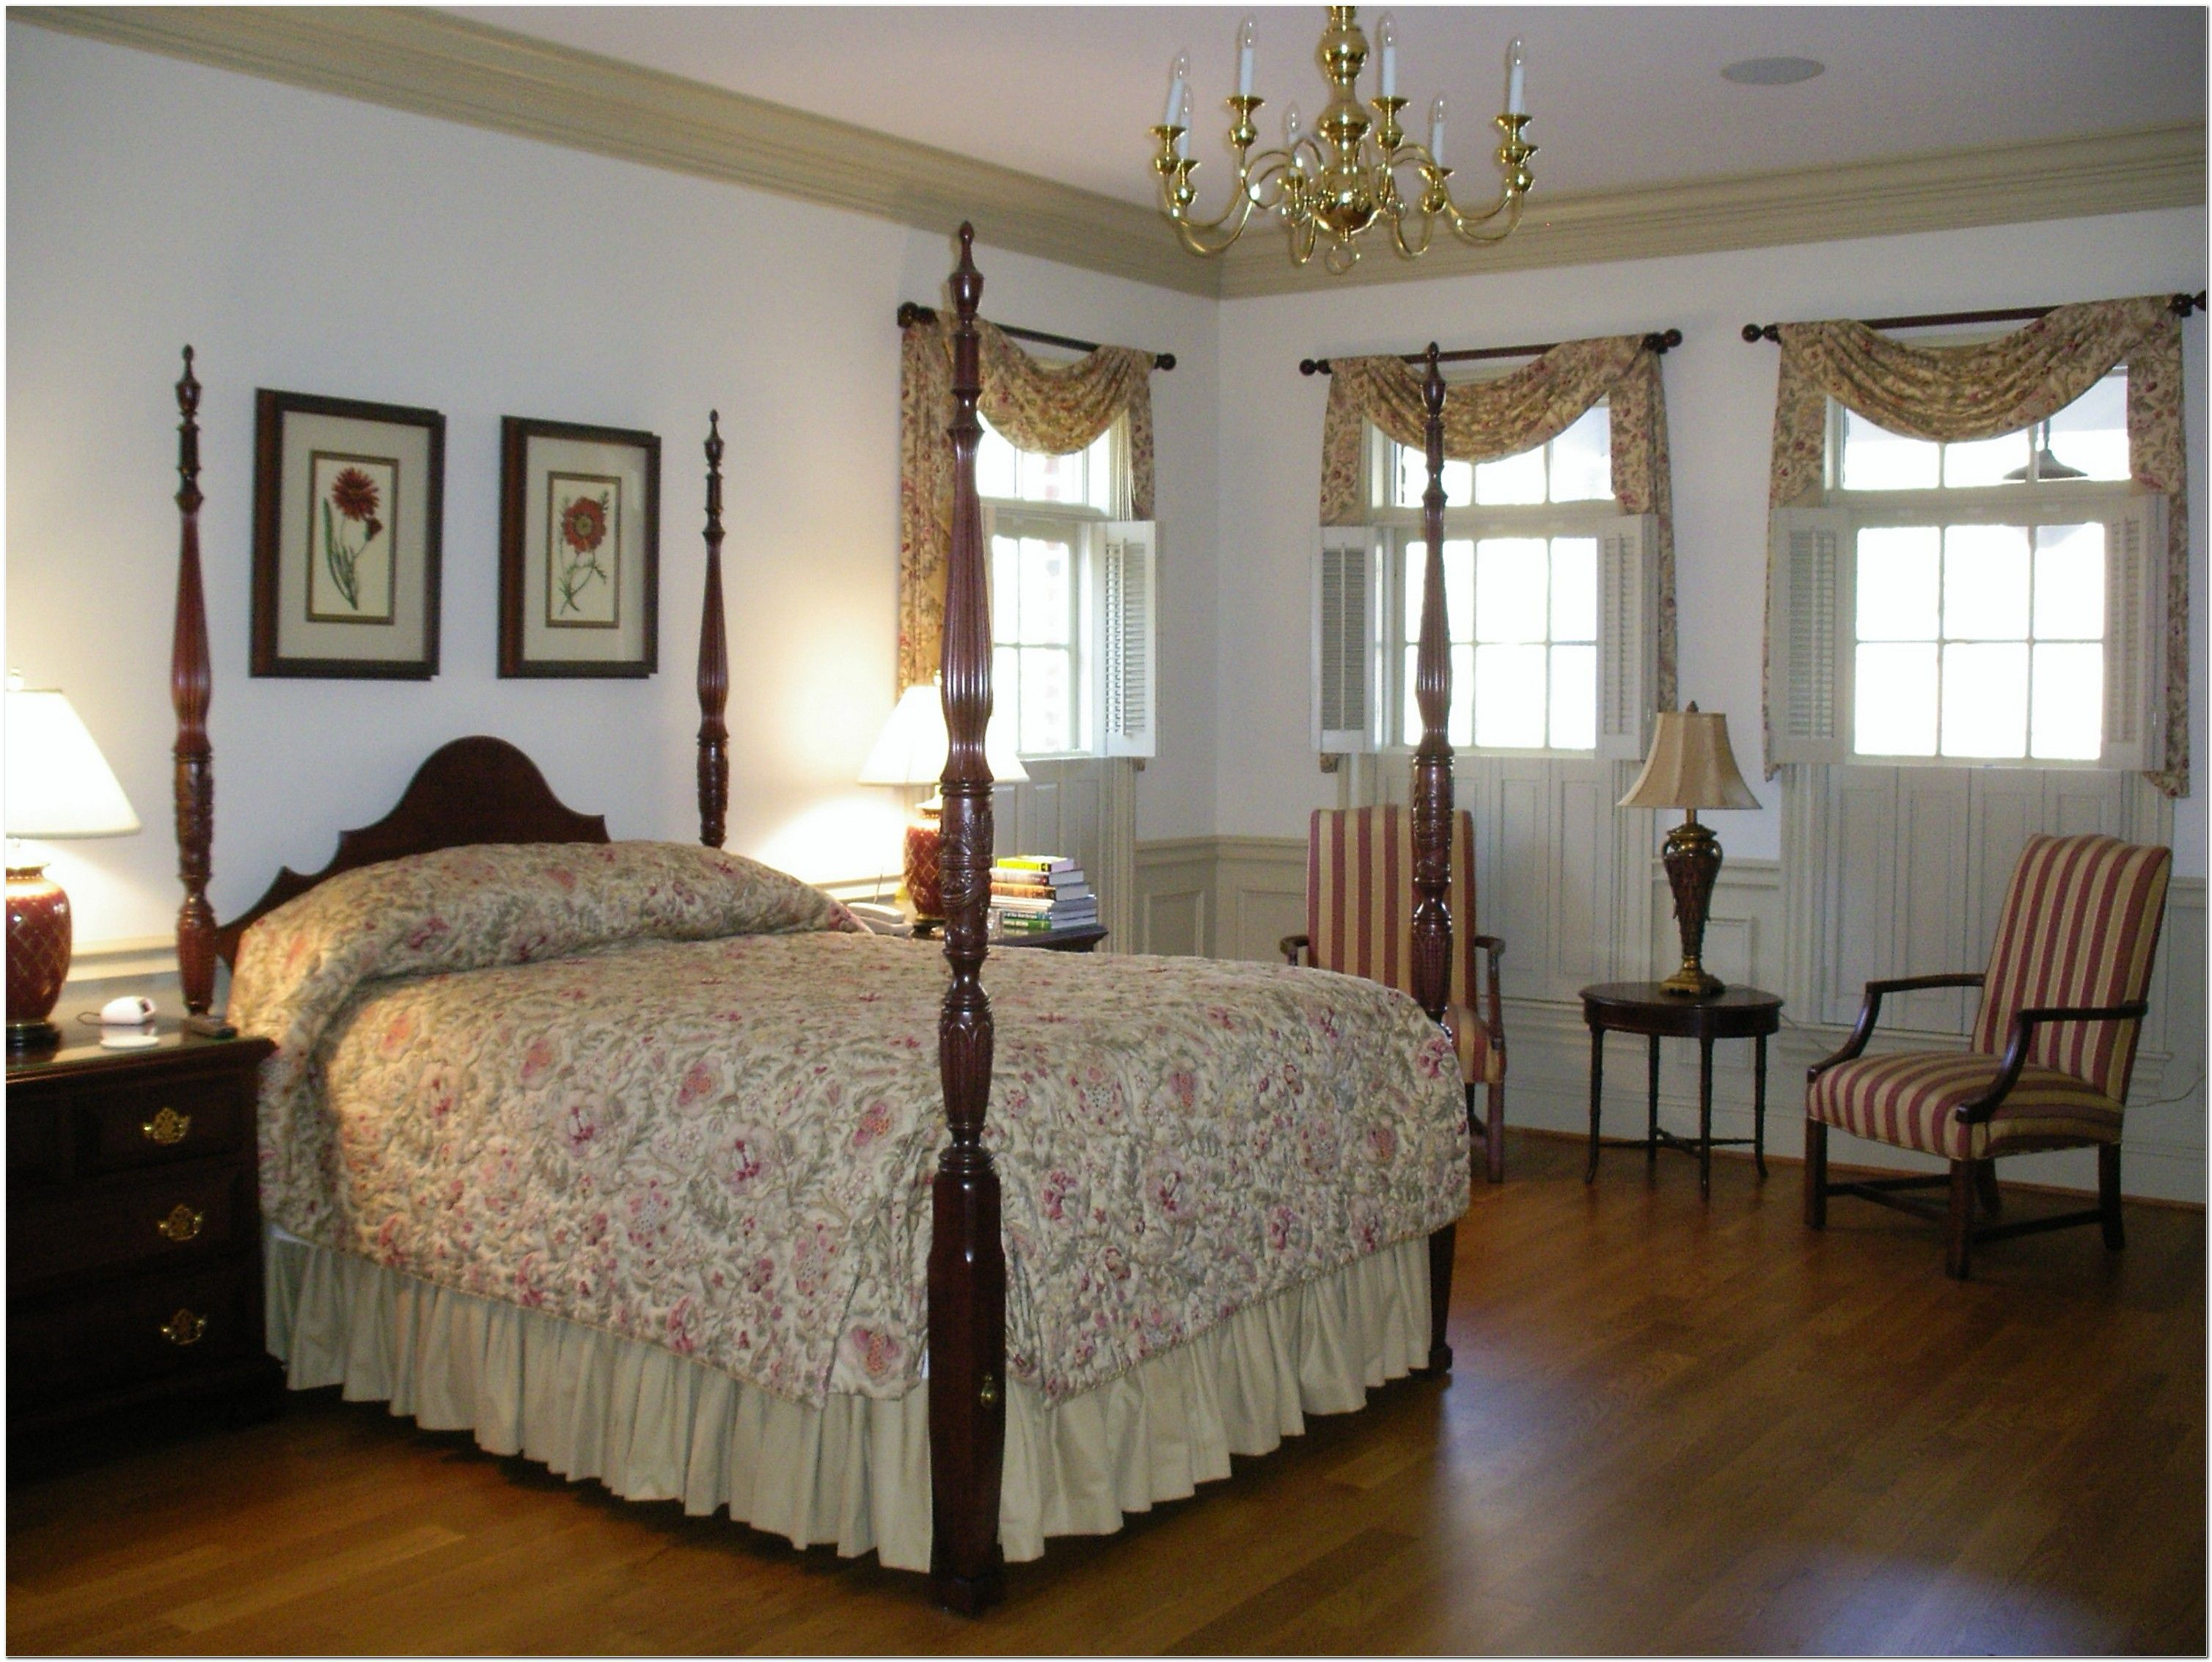 Williamsburg window treatments google search for American bedrooms